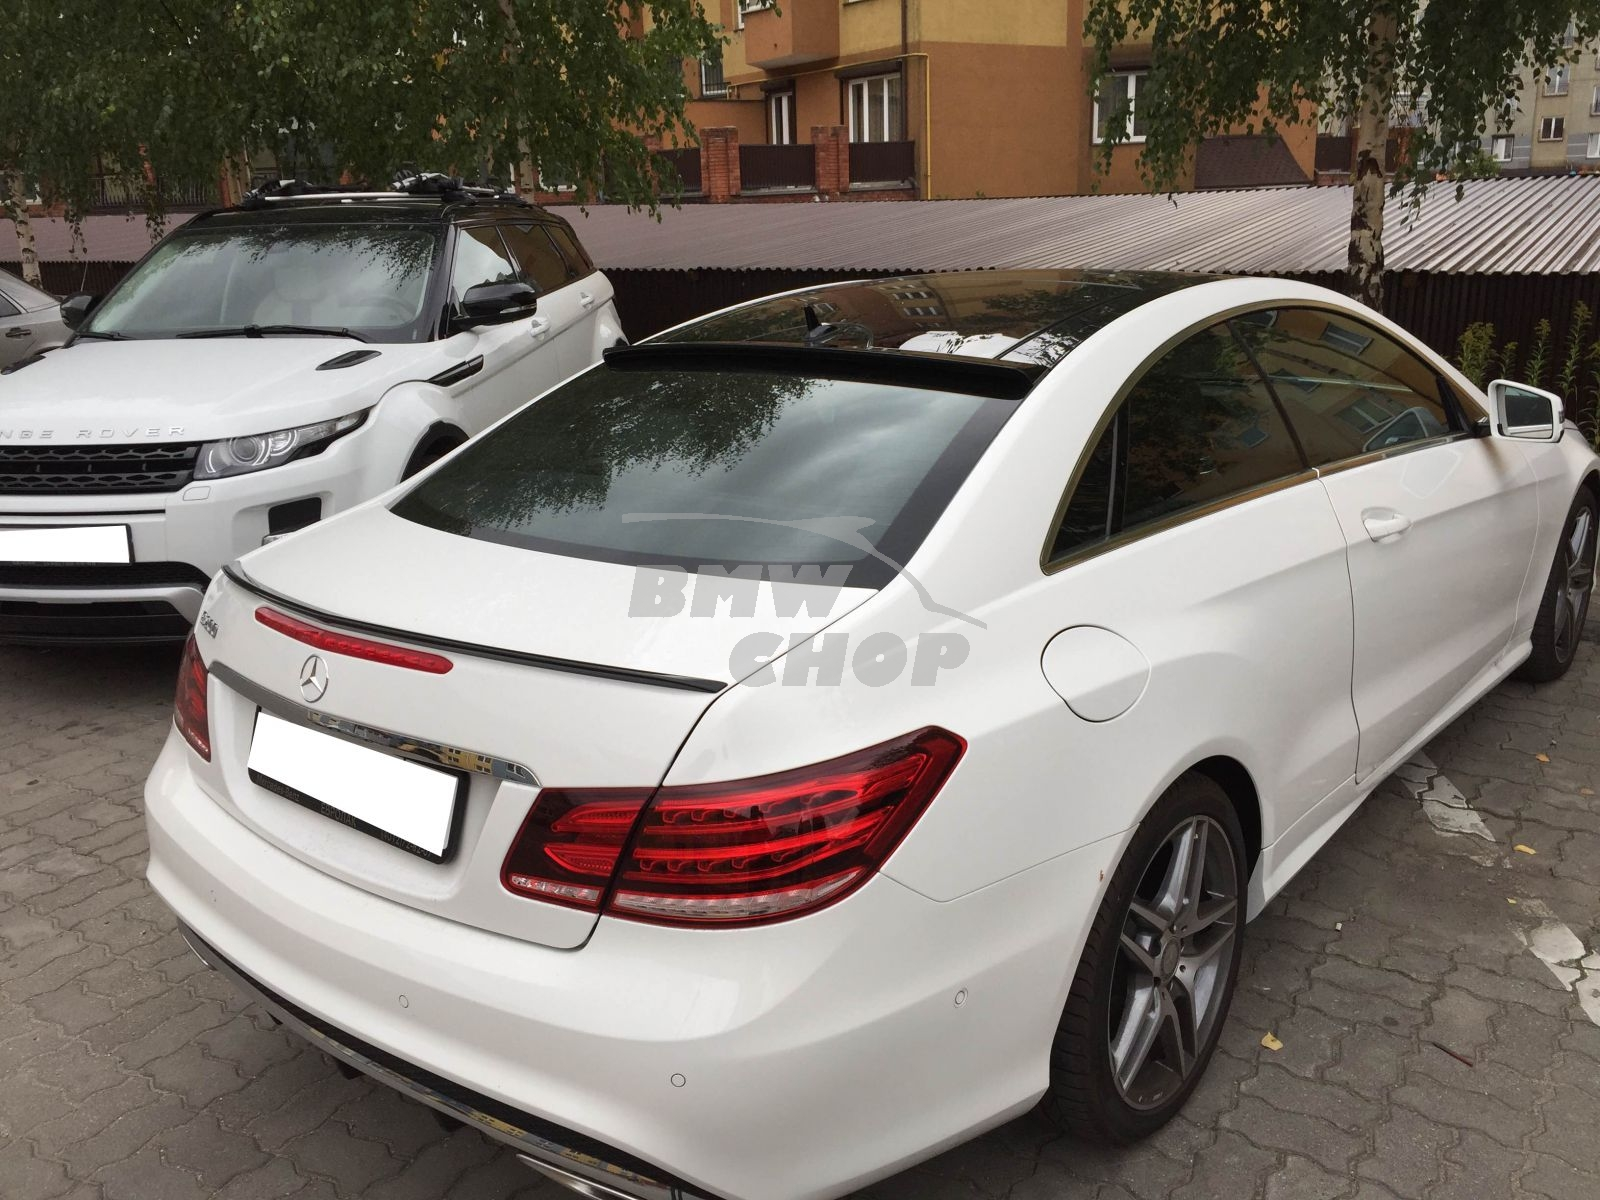 painted mercedes benz c207 e class 2dr coupe rear window